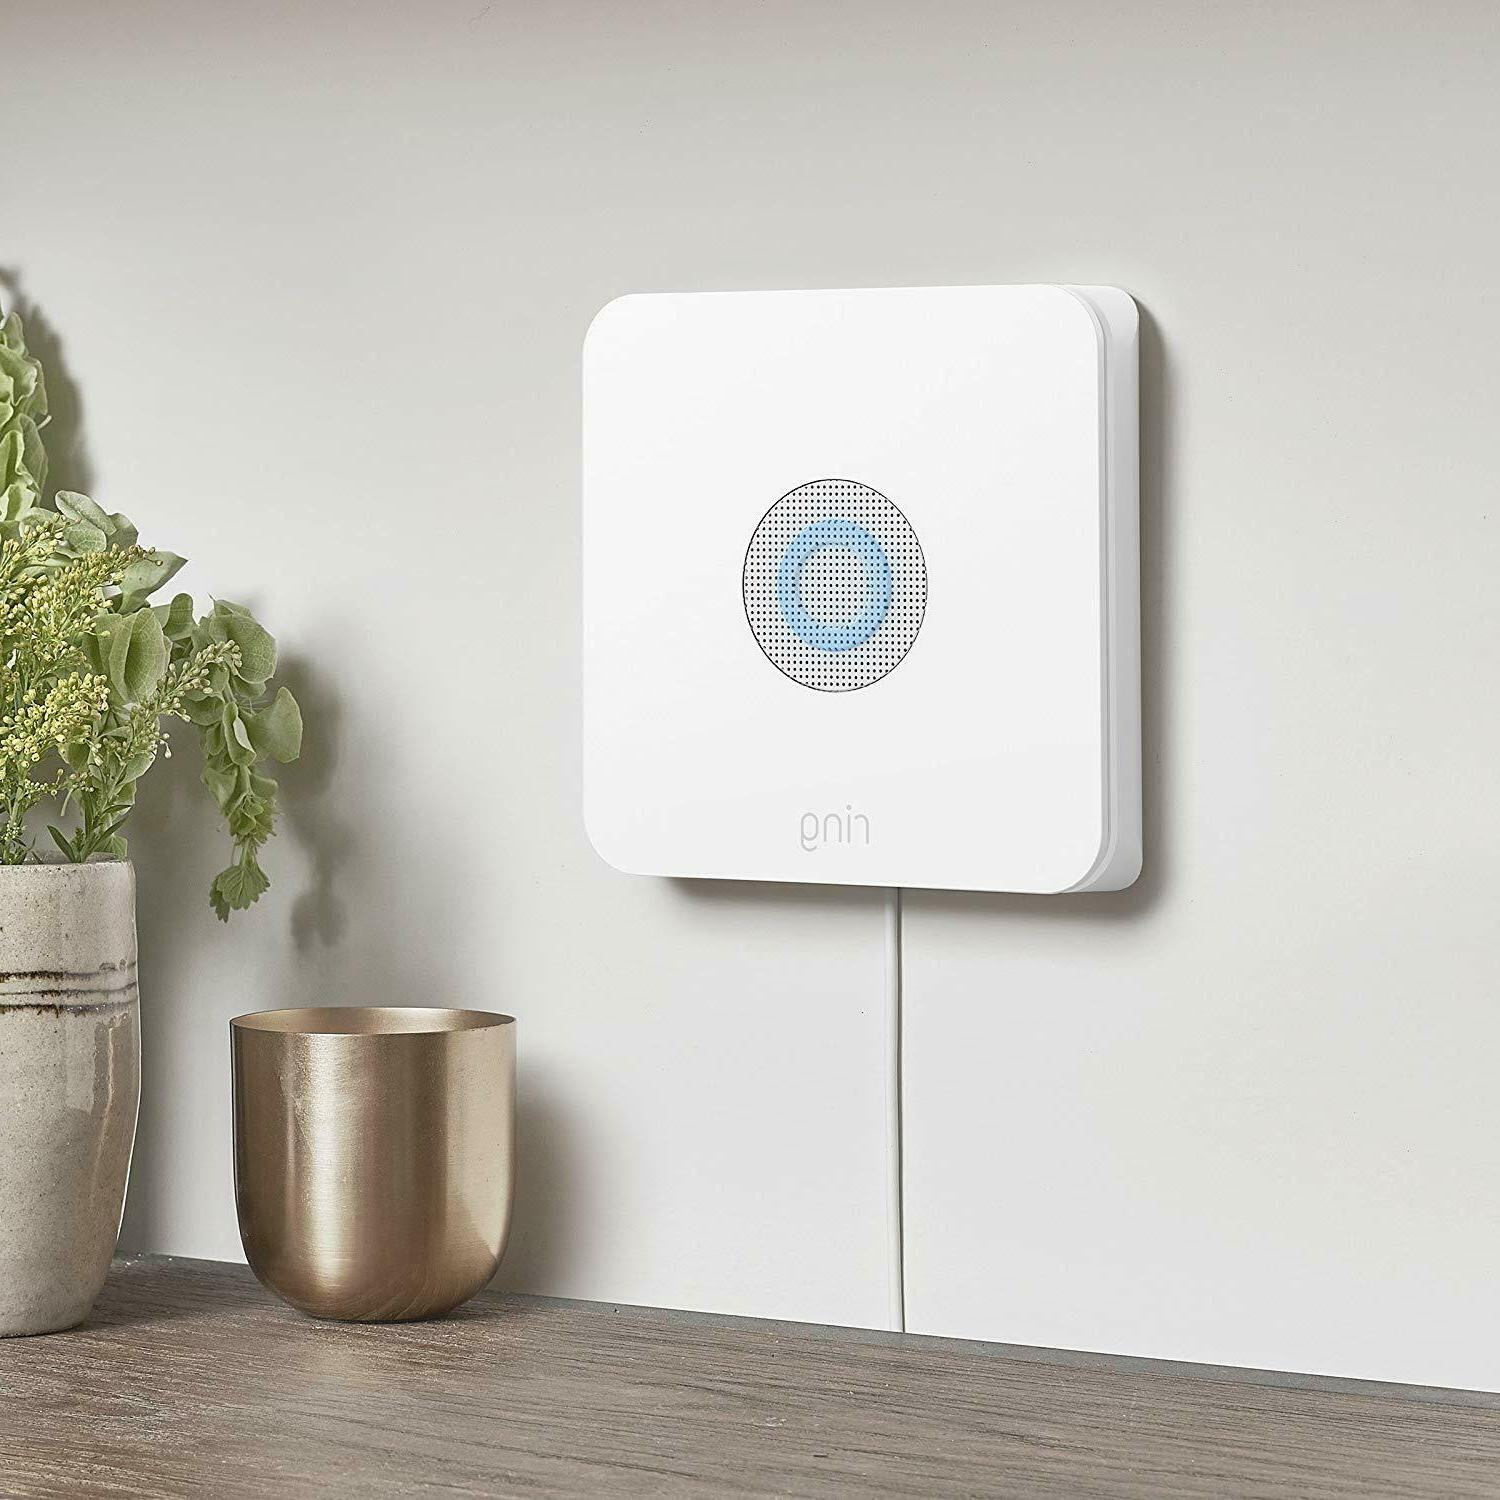 Ring Alarm Security + Dot Works with